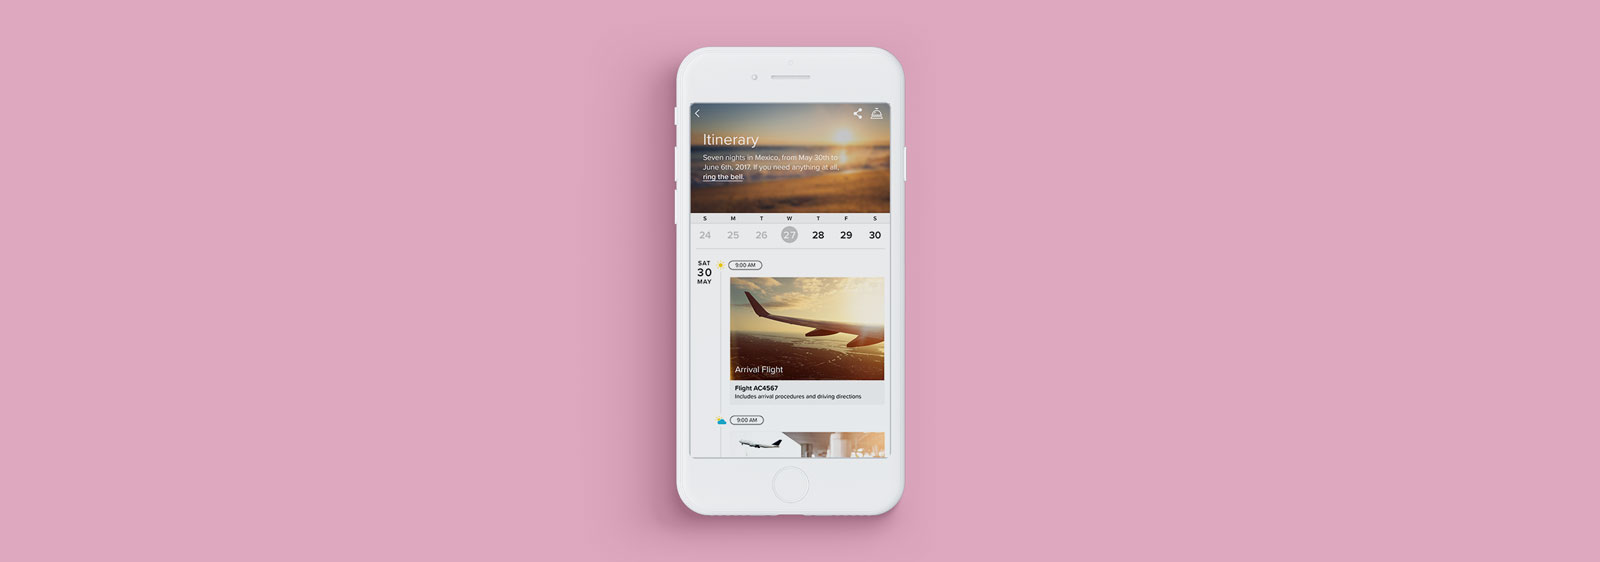 Luxury Retreats Travel Itinerary UX Design by Noisy Ghost Co.